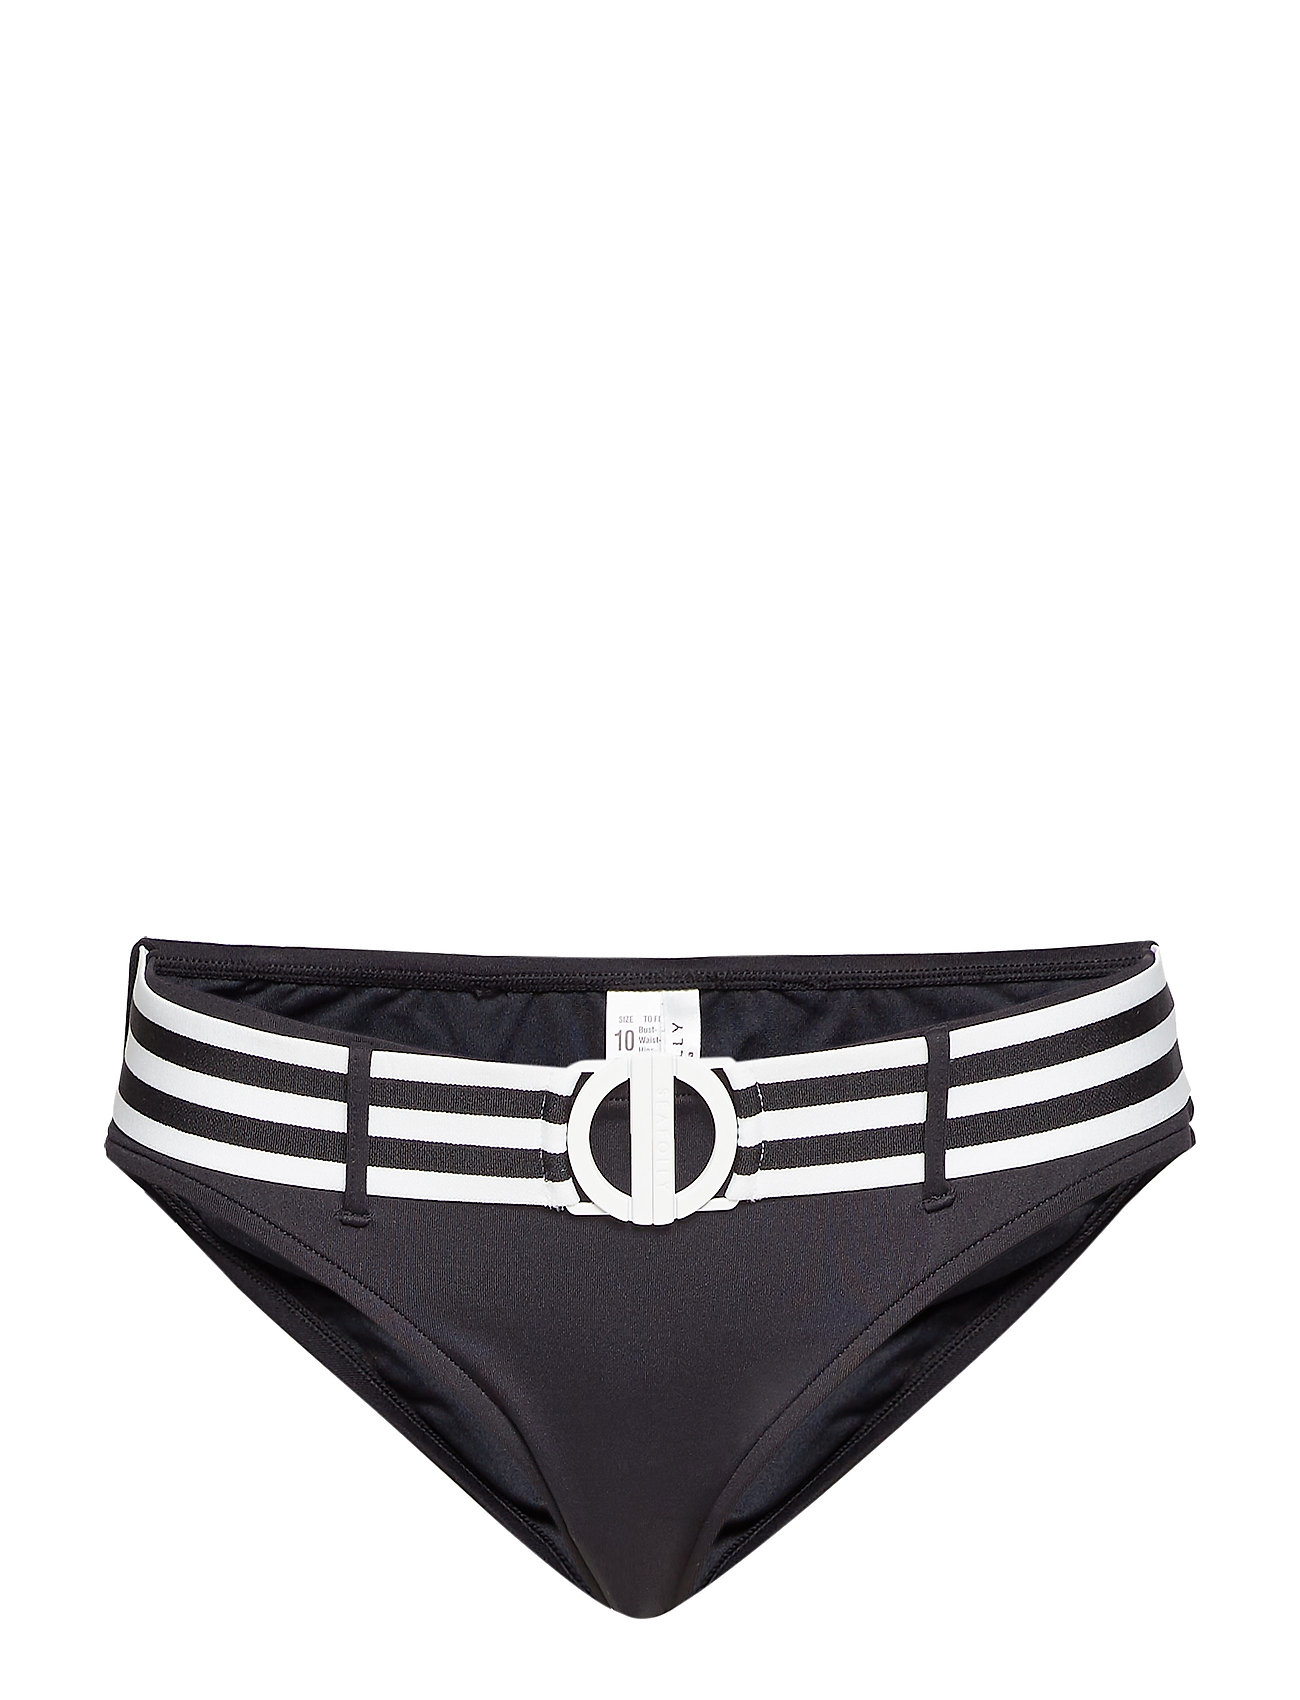 Seafolly Belted Hipster - BLACK